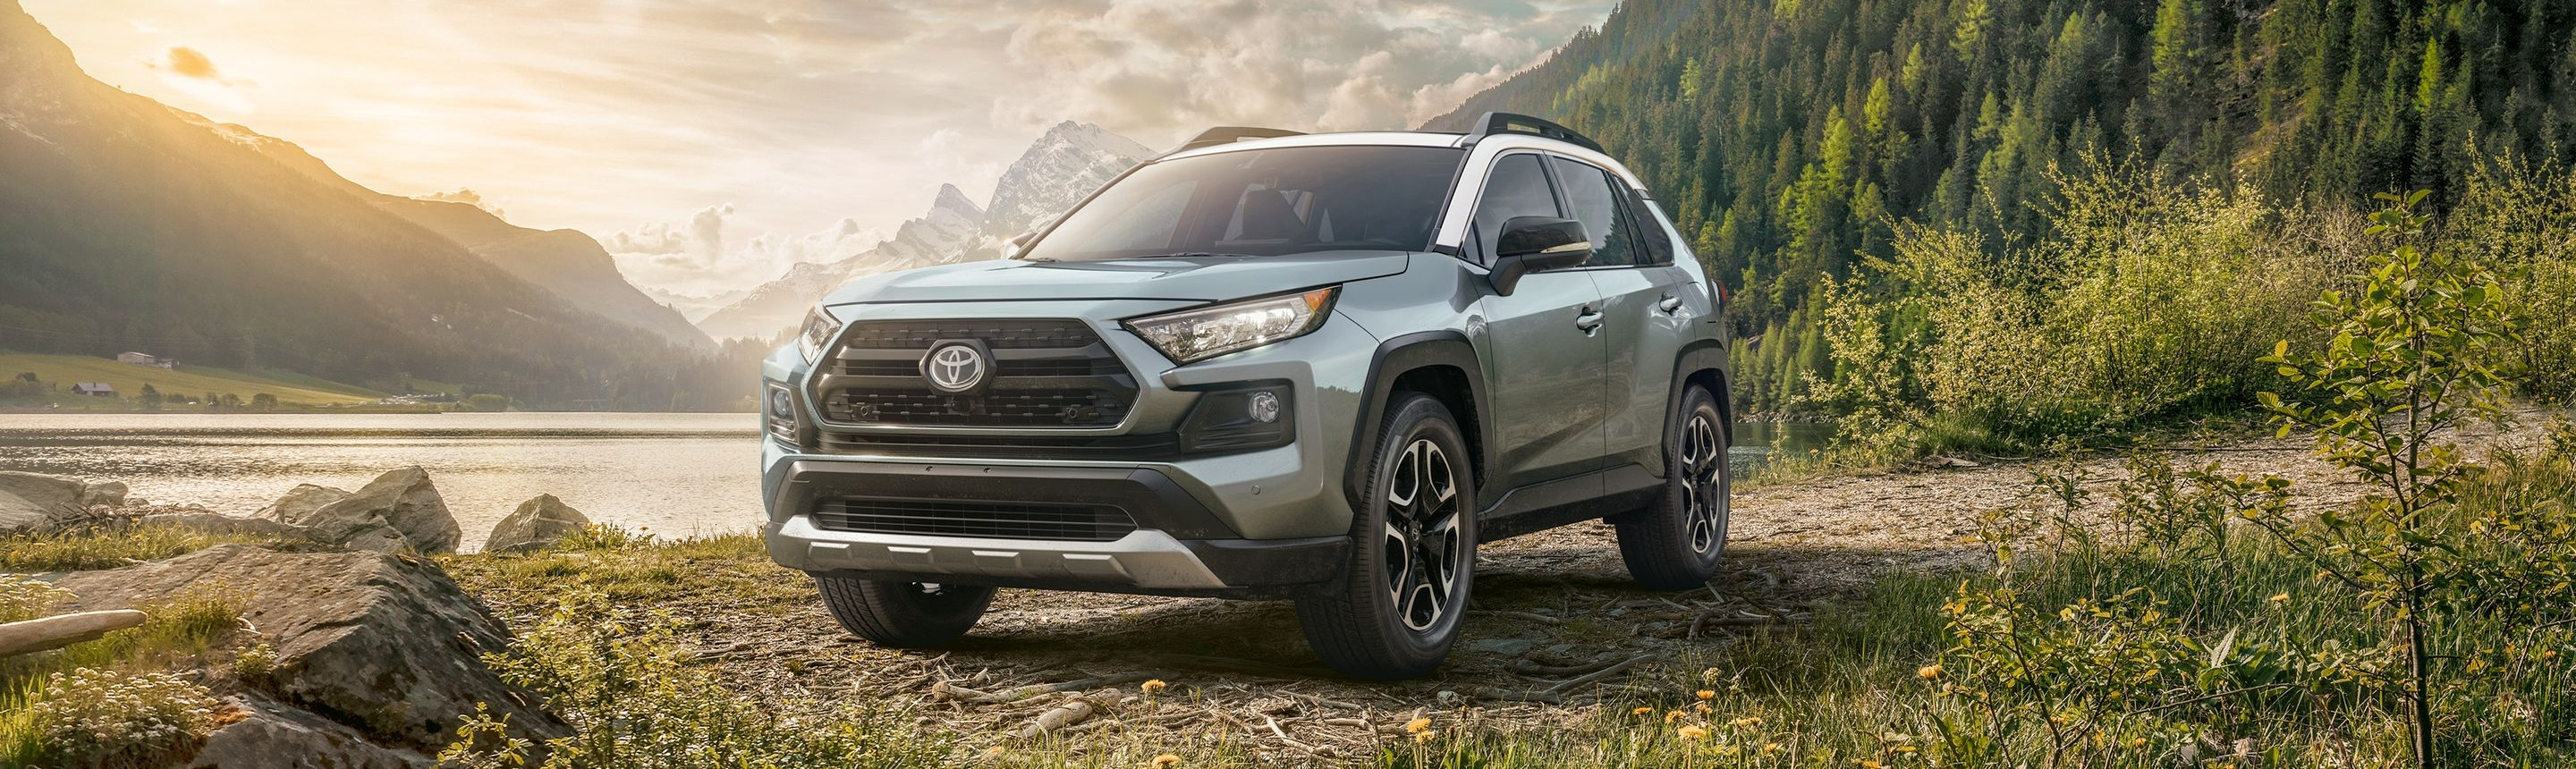 2019 Toyota RAV4 Financing near Stamford, CT